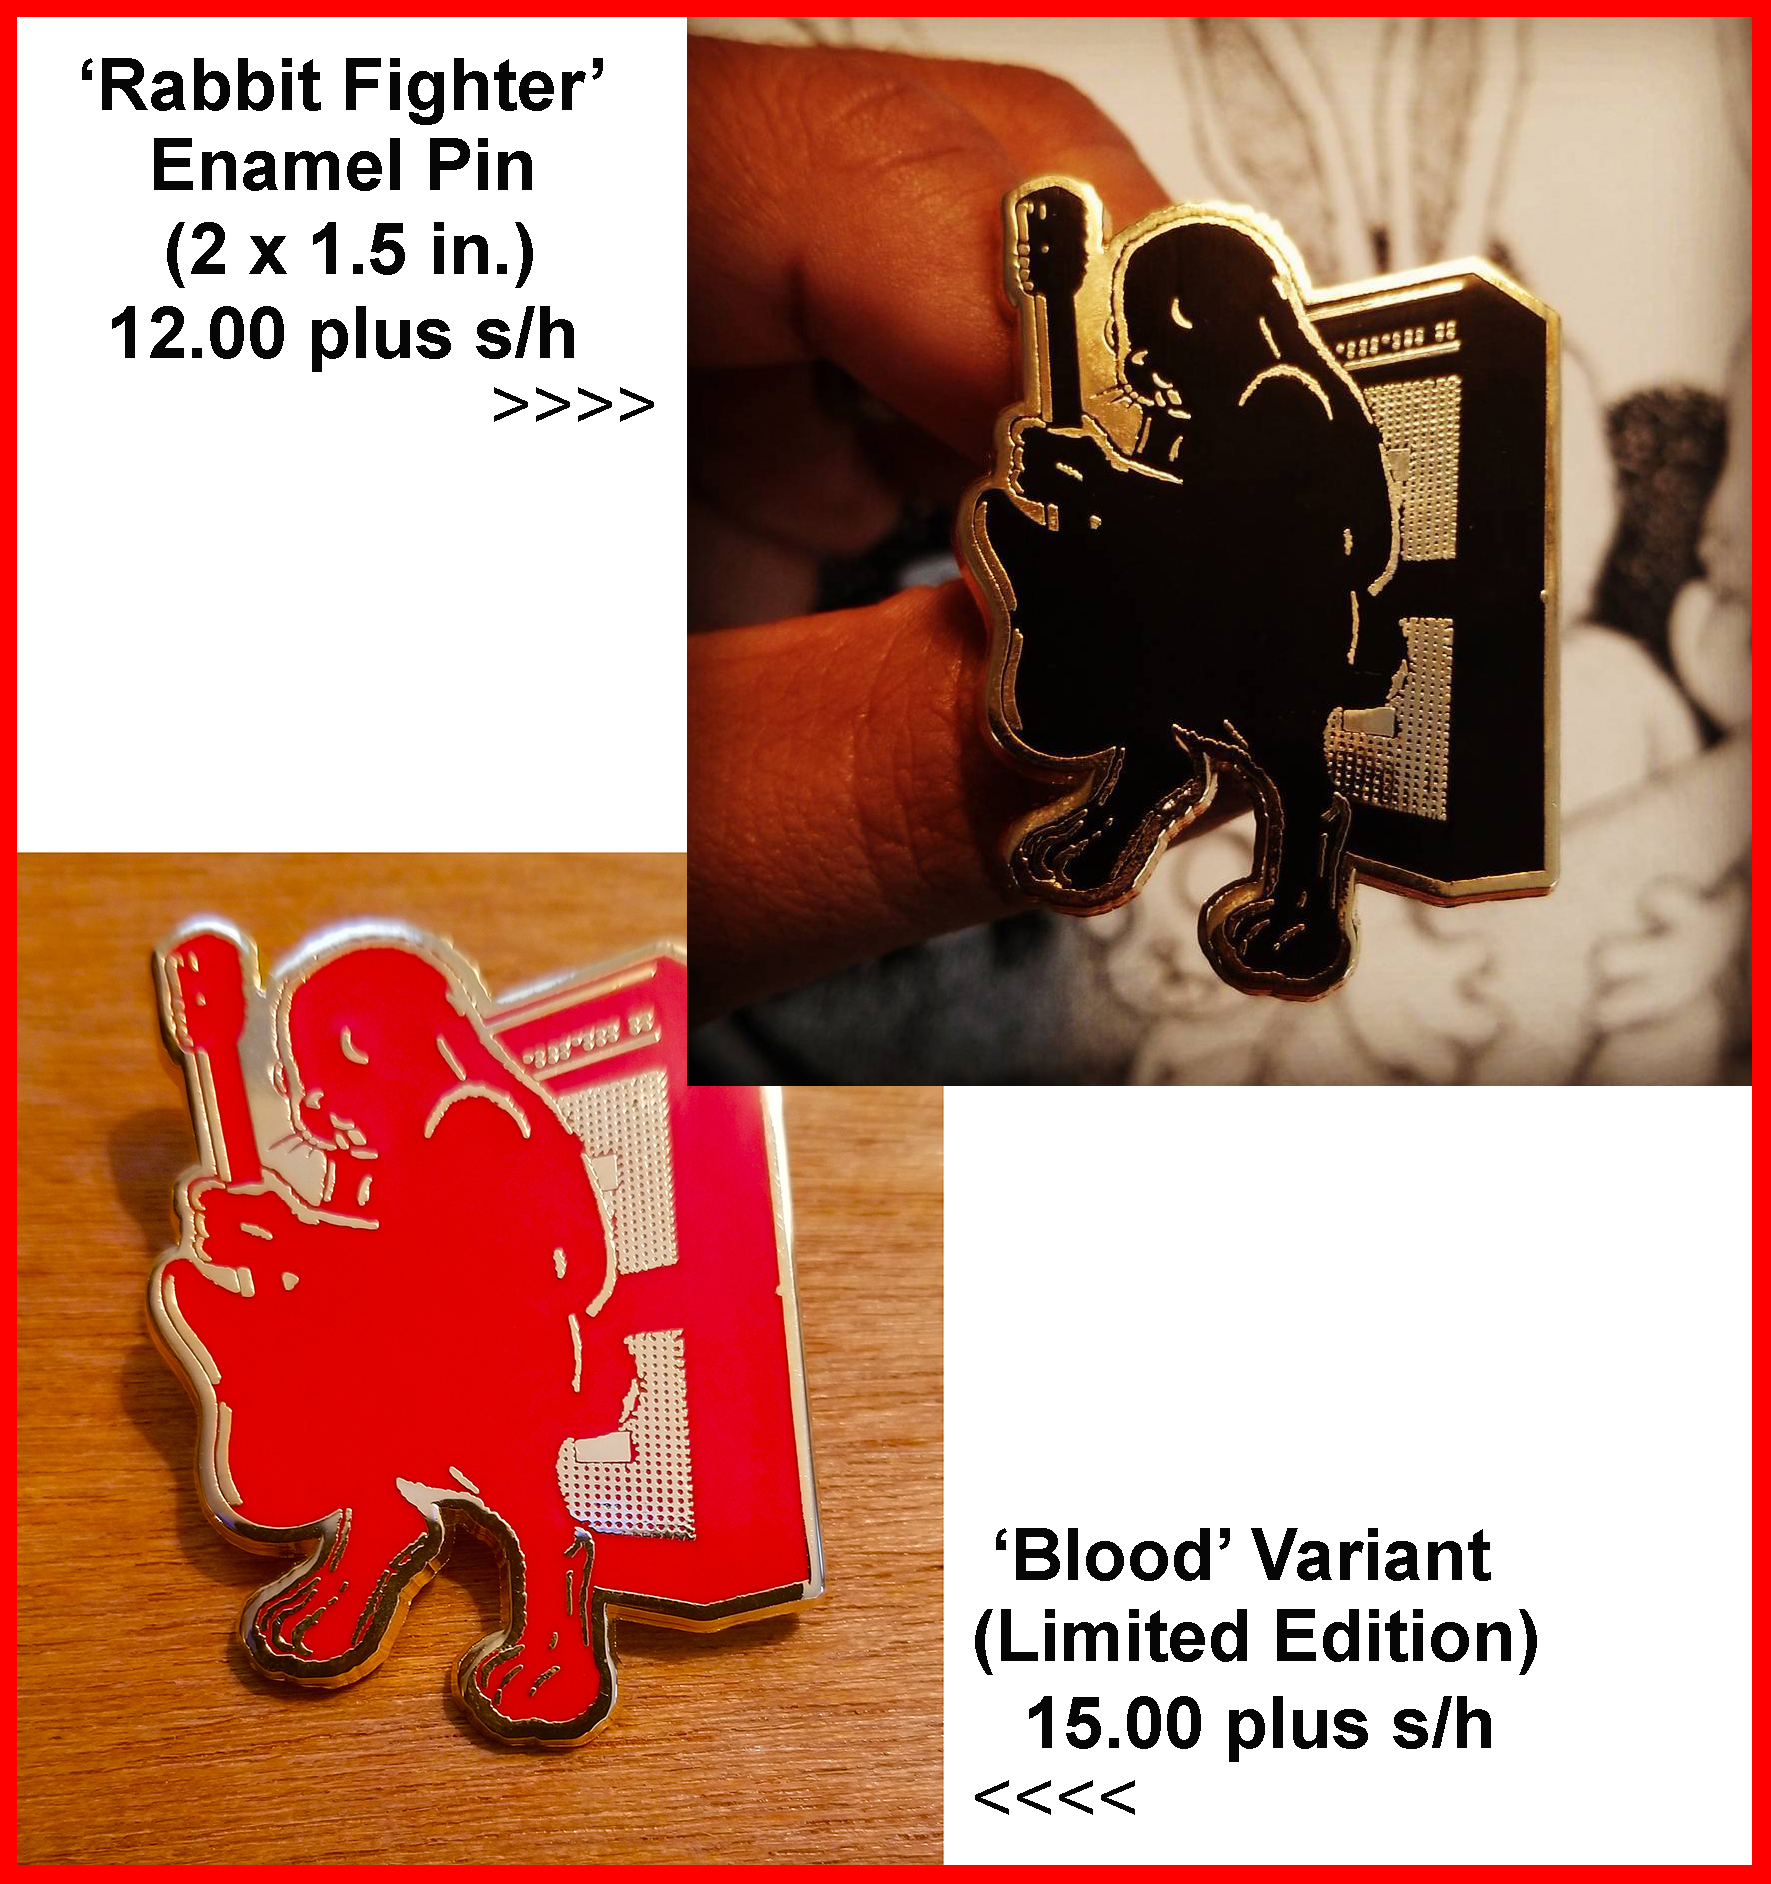 *NEW* Jermaine Rogers ENAMEL PIN COLLECTION (Various Pins)